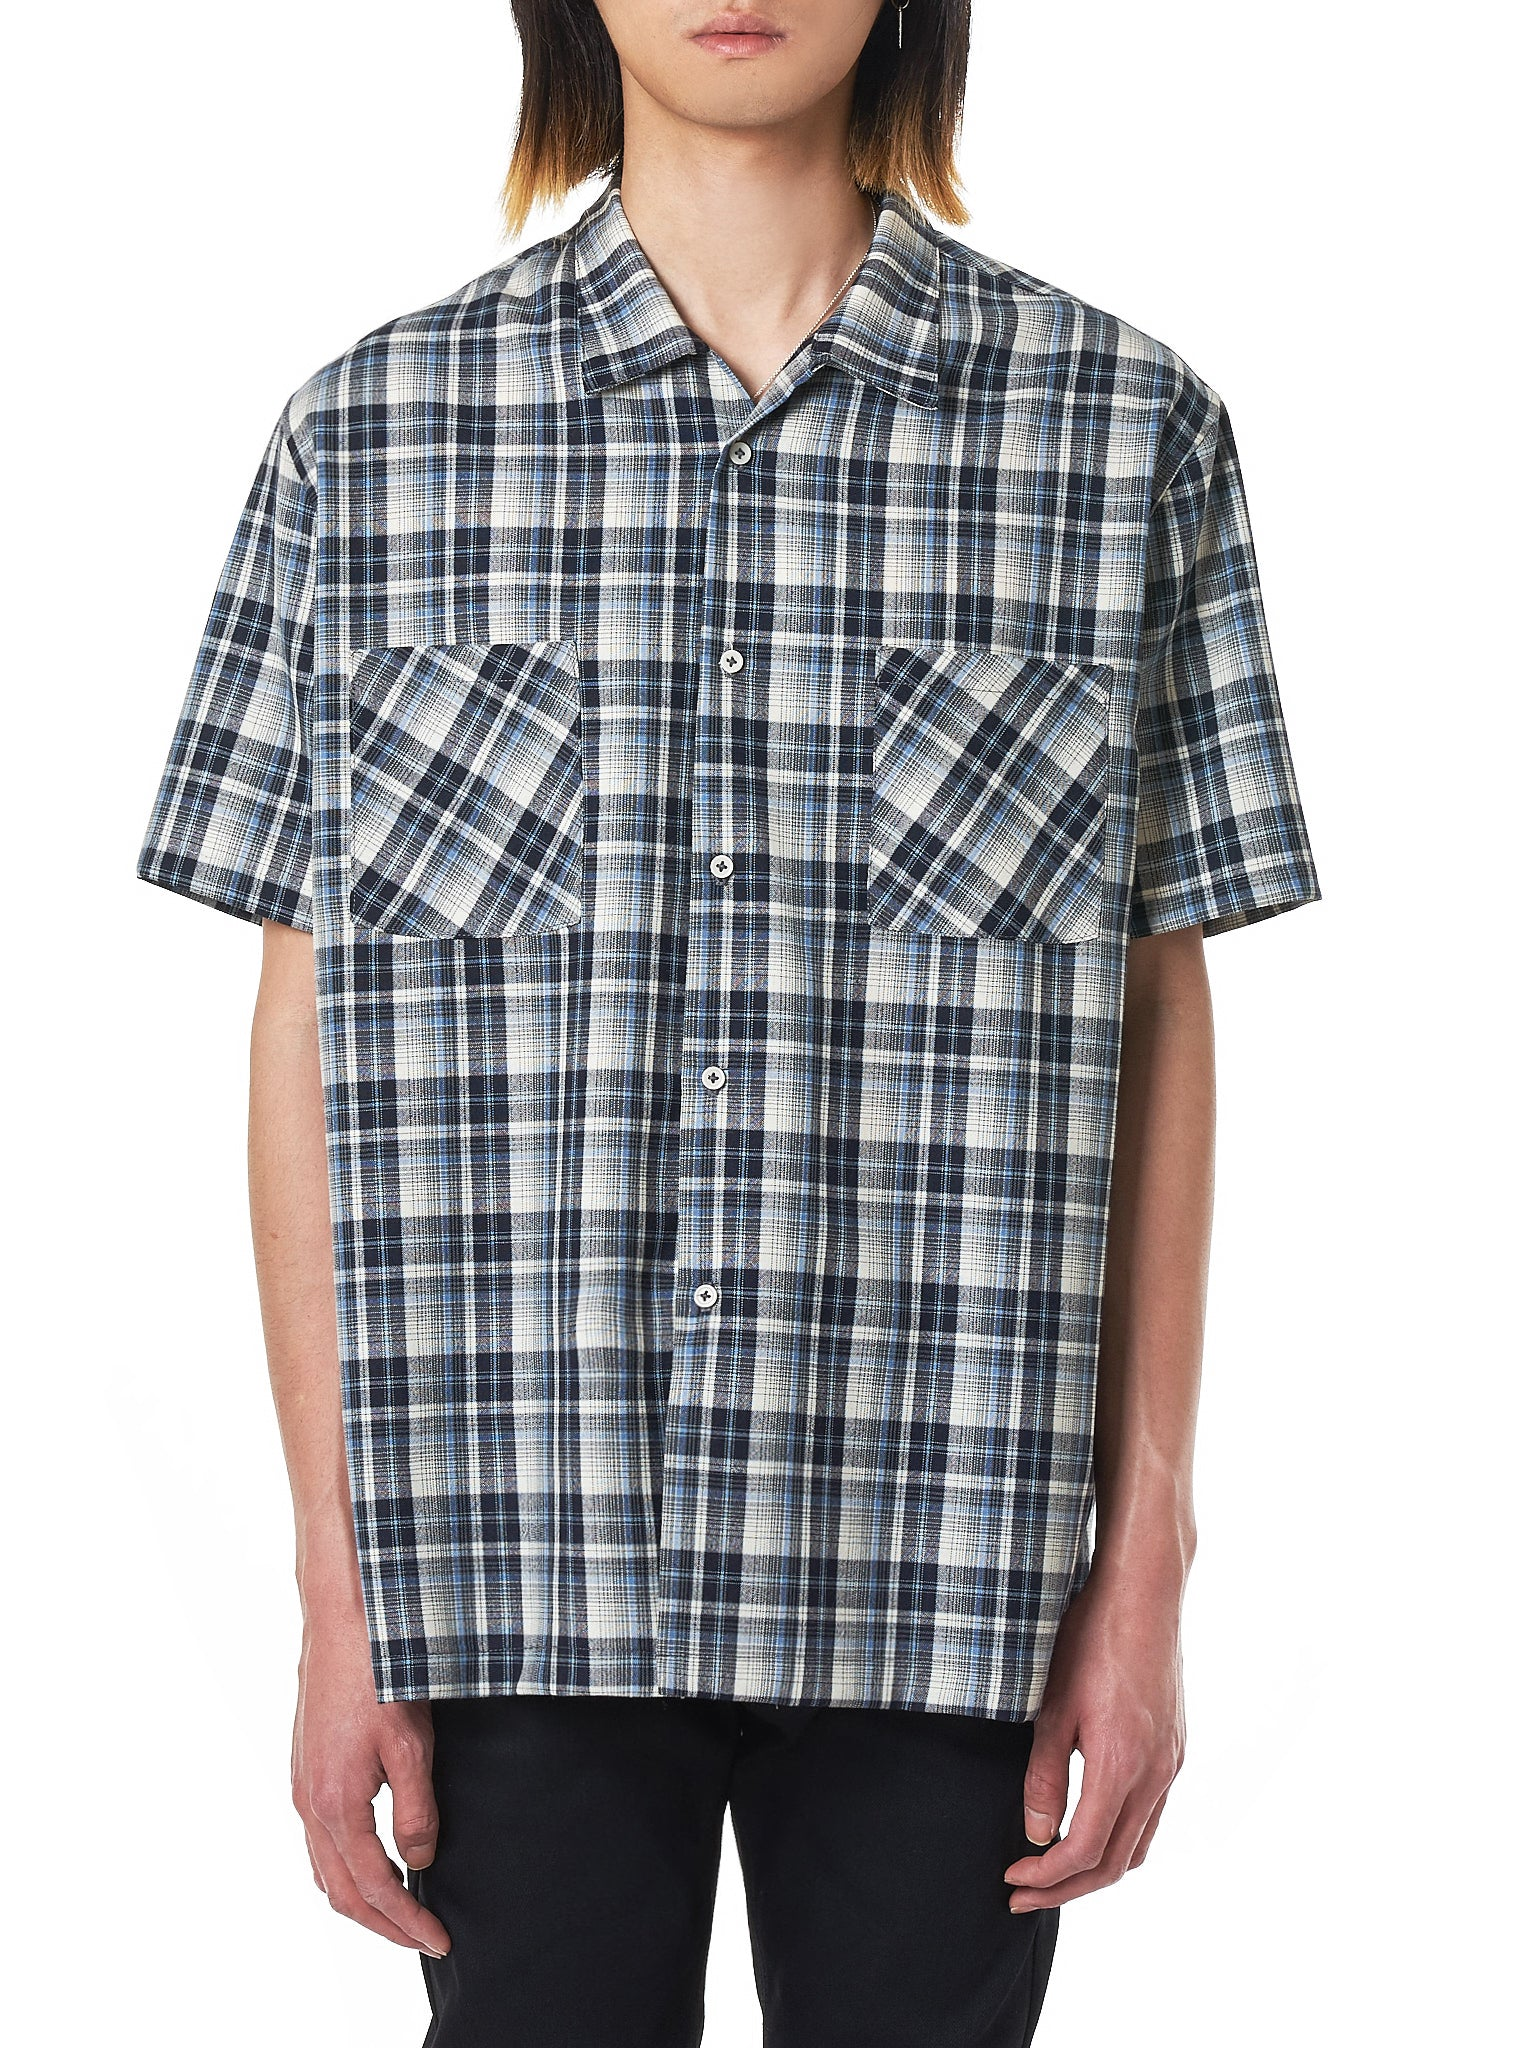 Short-Sleeve Plaid Shirt (FS0001-BLACK-WHITE-BLUE)